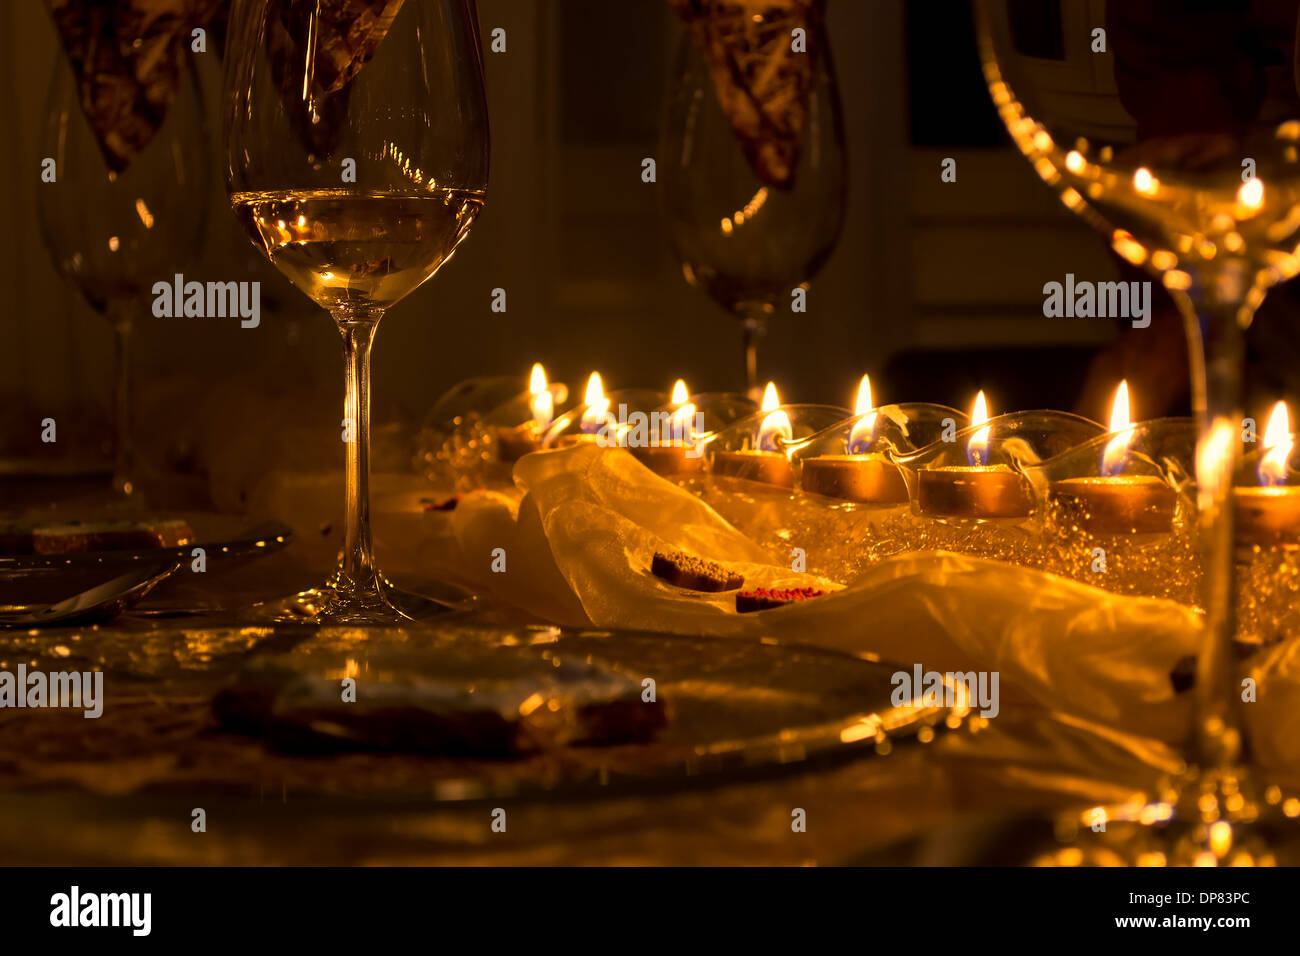 Solemn Dining Table, wine glasses in the candlelight - Stock Image